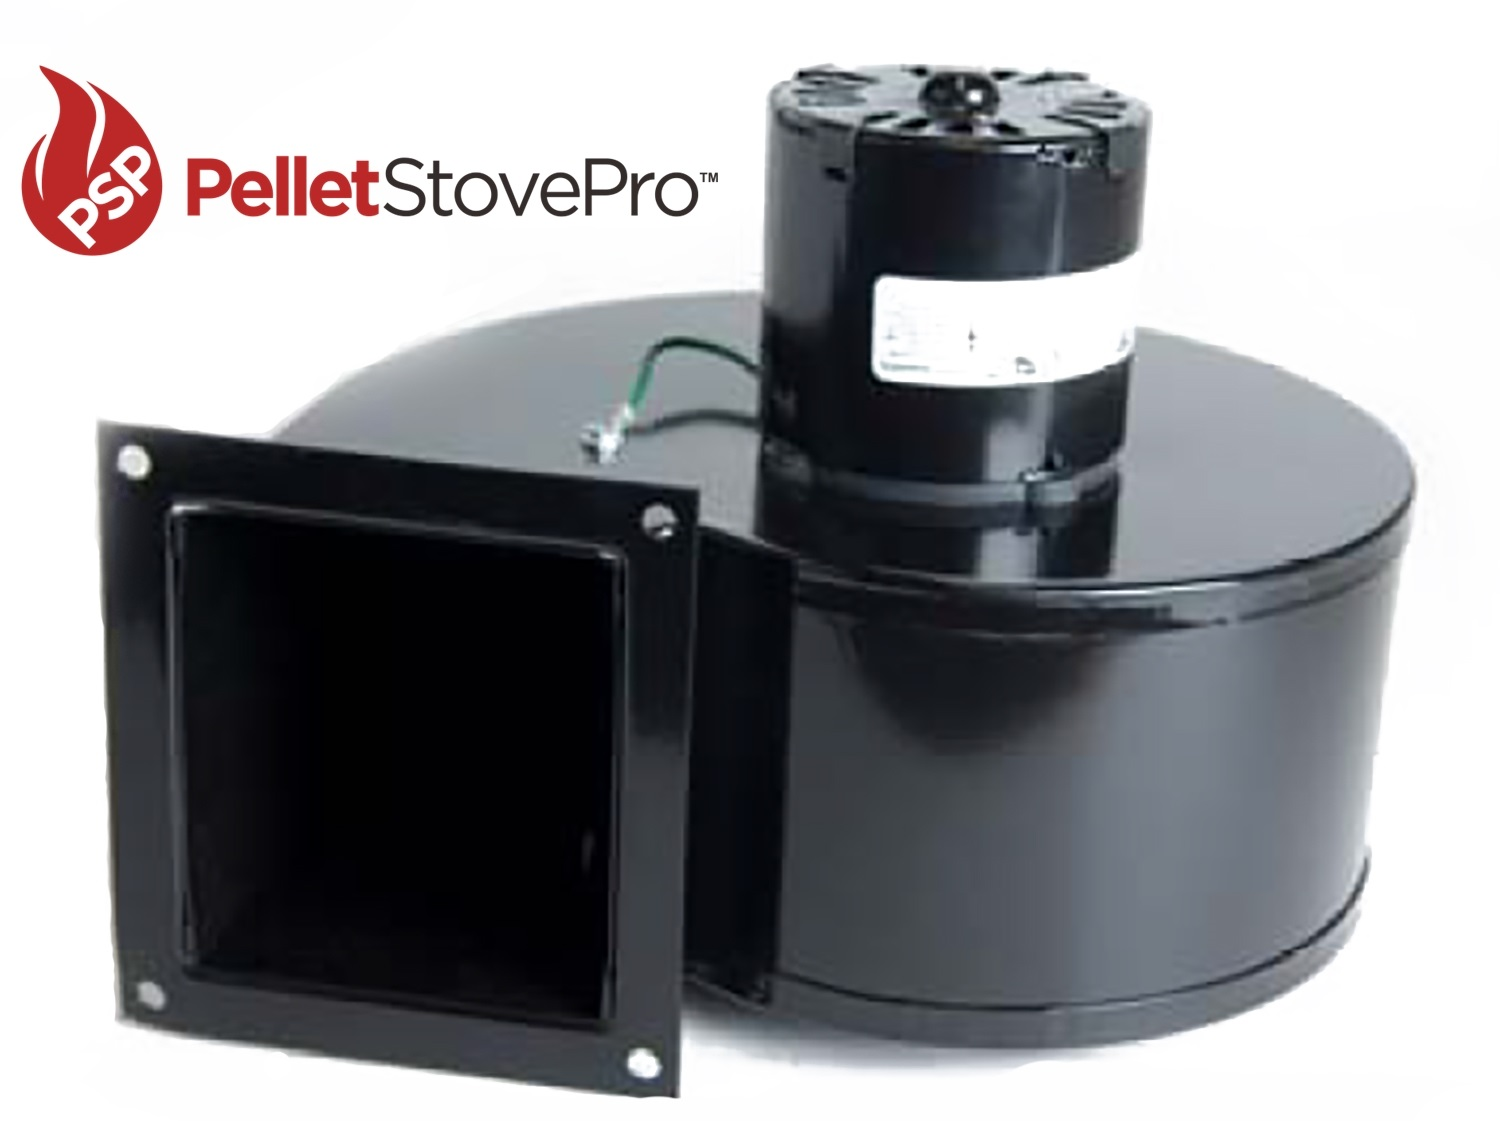 Country comfort stove convection blower fan 11 1214 g - Pellet stoves clean comfort ...